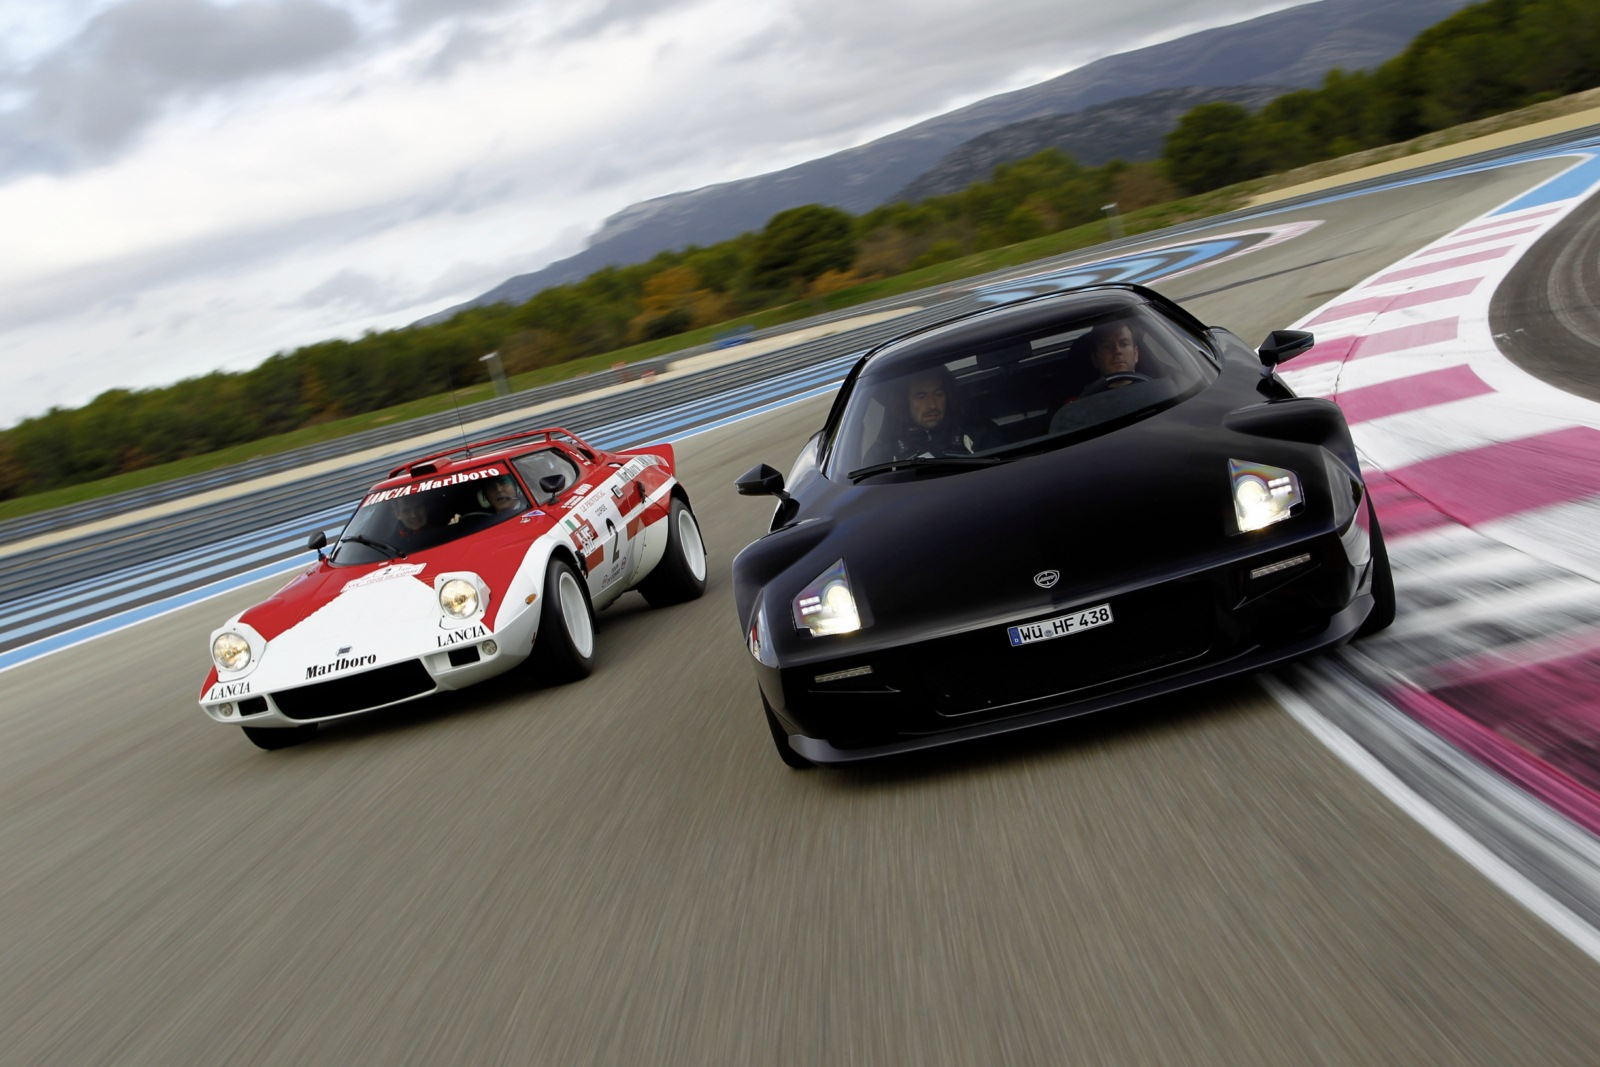 new-stratos-photo-gallery-10